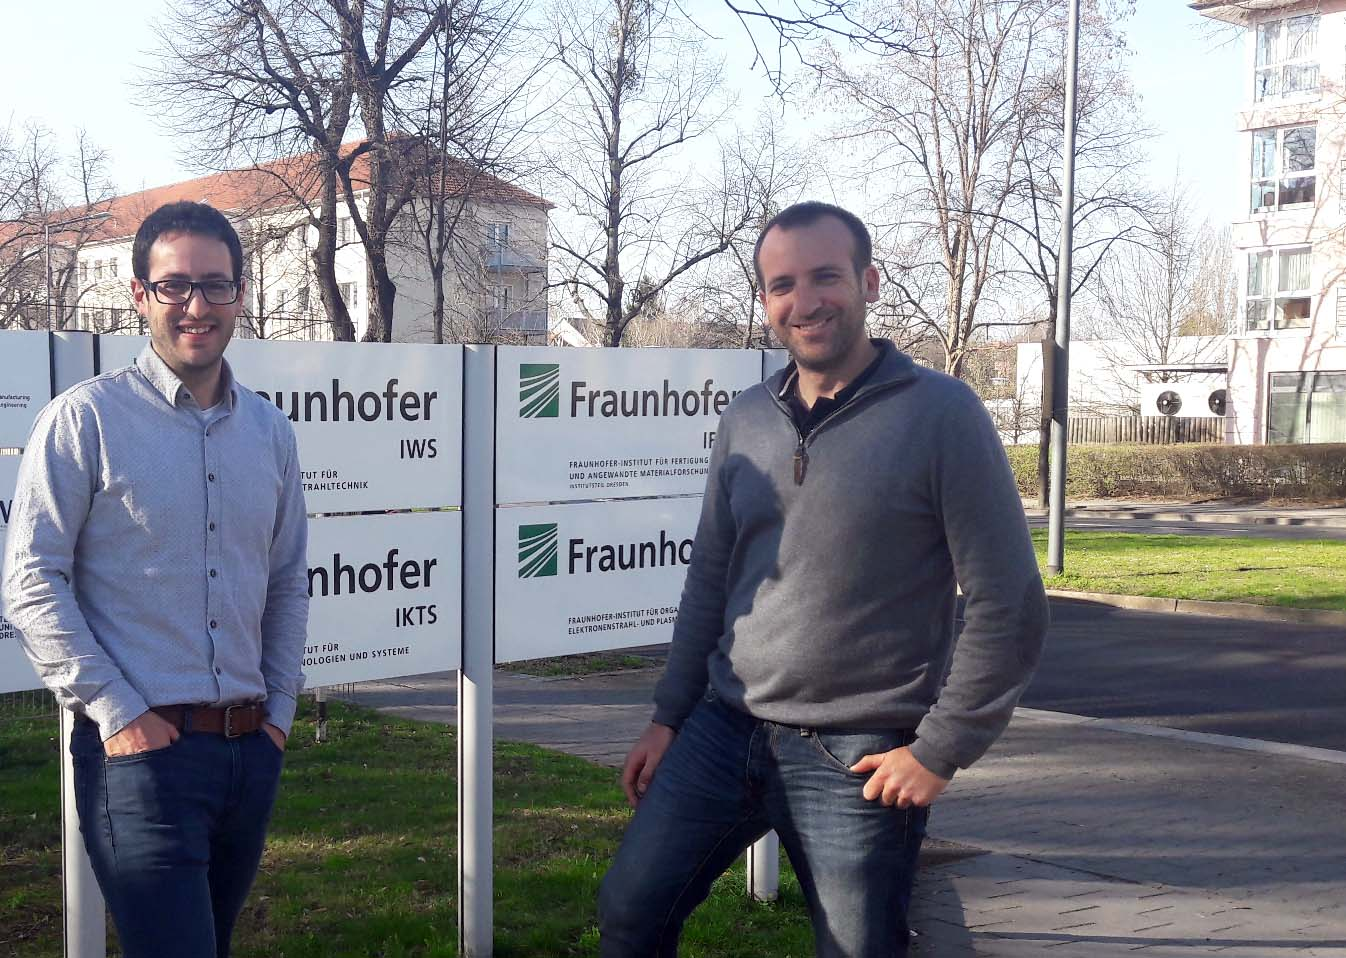 Eloi and Jaume on the Frauhofer headquarters.